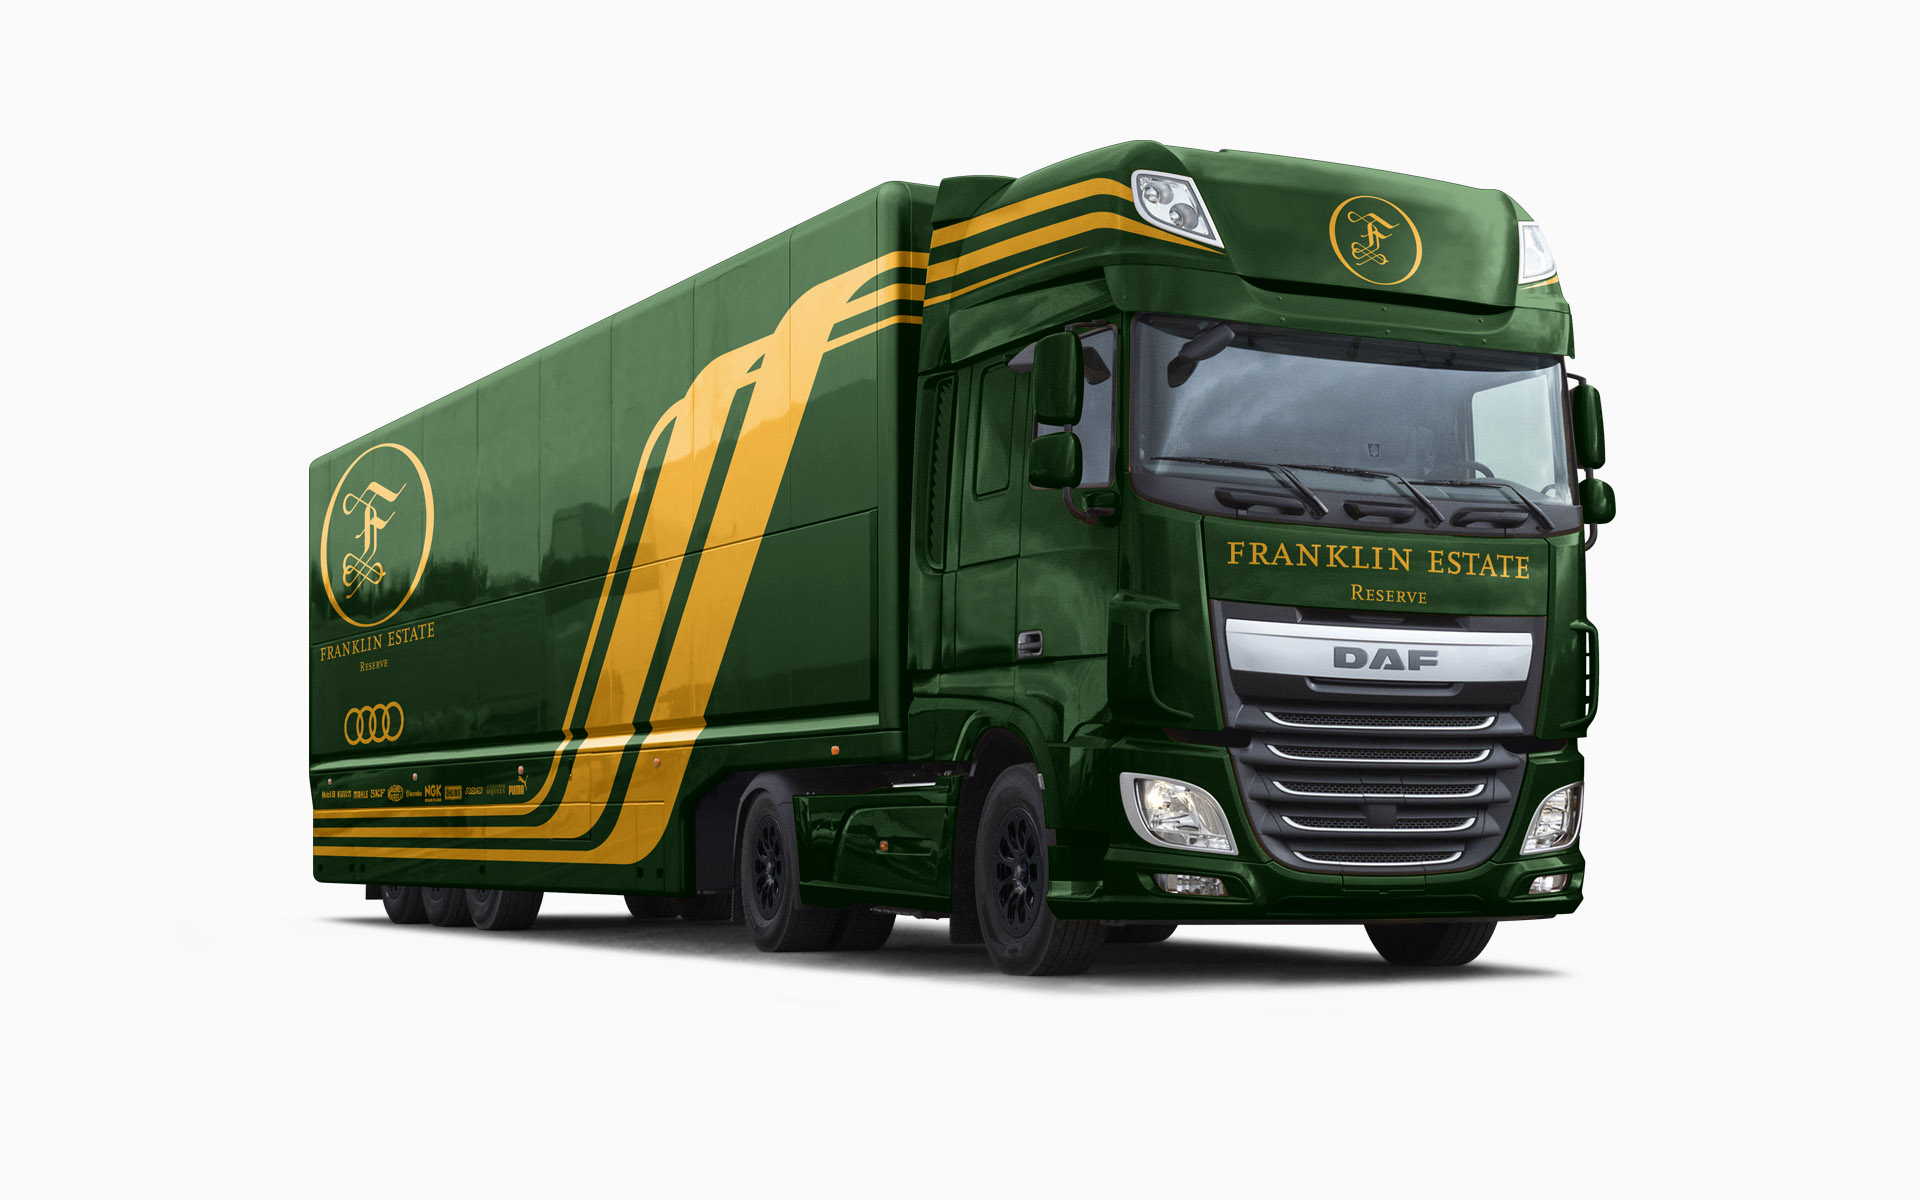 Franklin Estate Vineyards Reserve F1 Transporter Livery Visualization